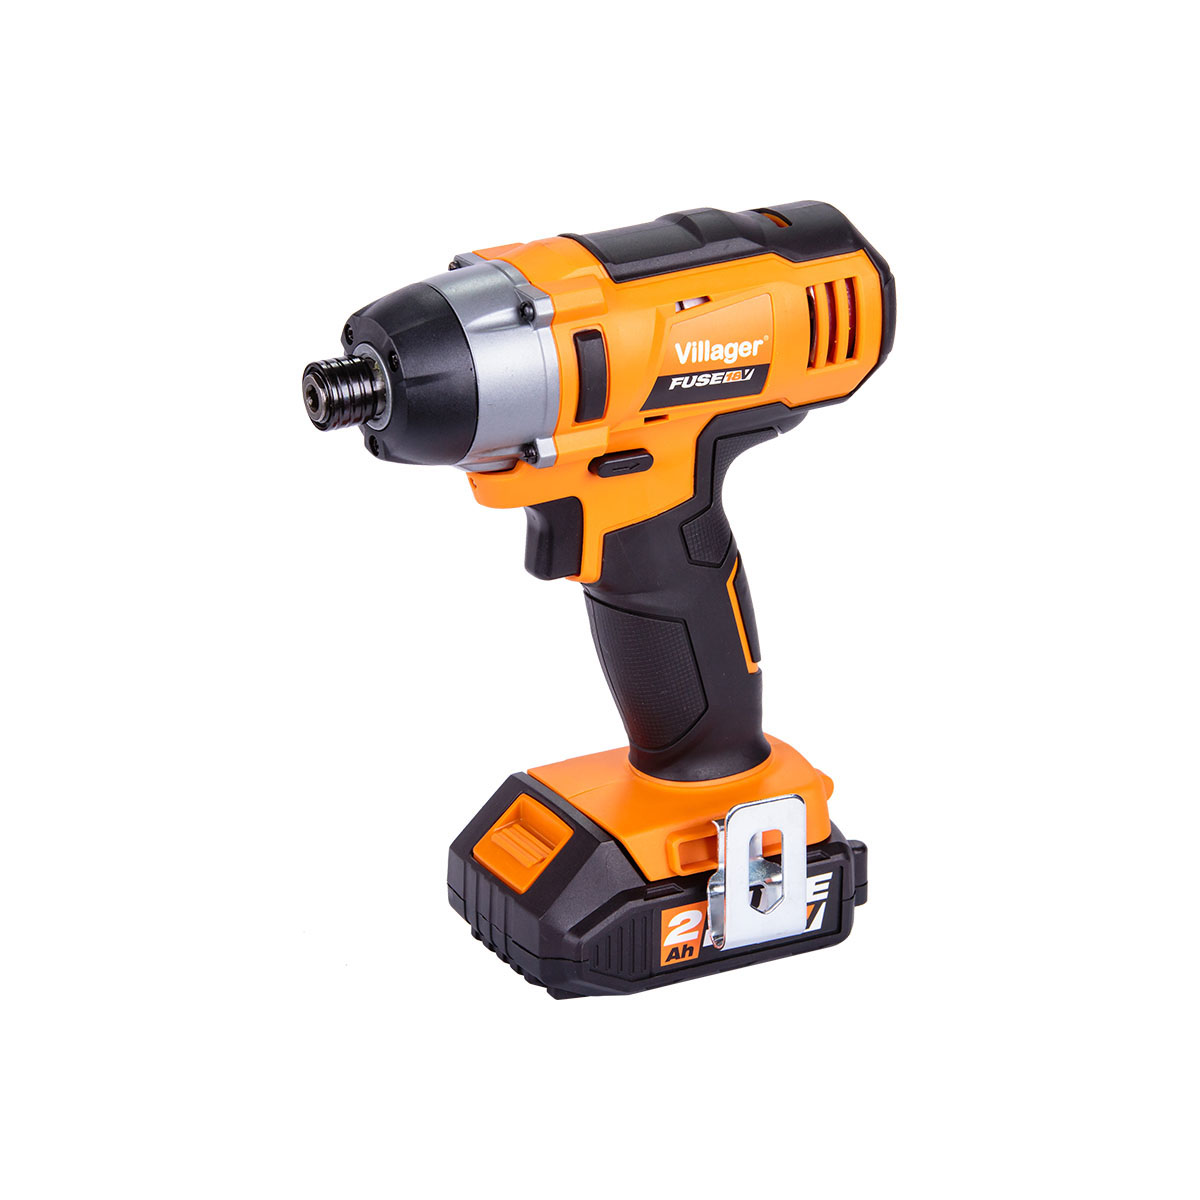 Villager Fuse Cordless Impact Driver 18v VLN 3420 1 x 1.5Ah Li-ion Battery and Charger